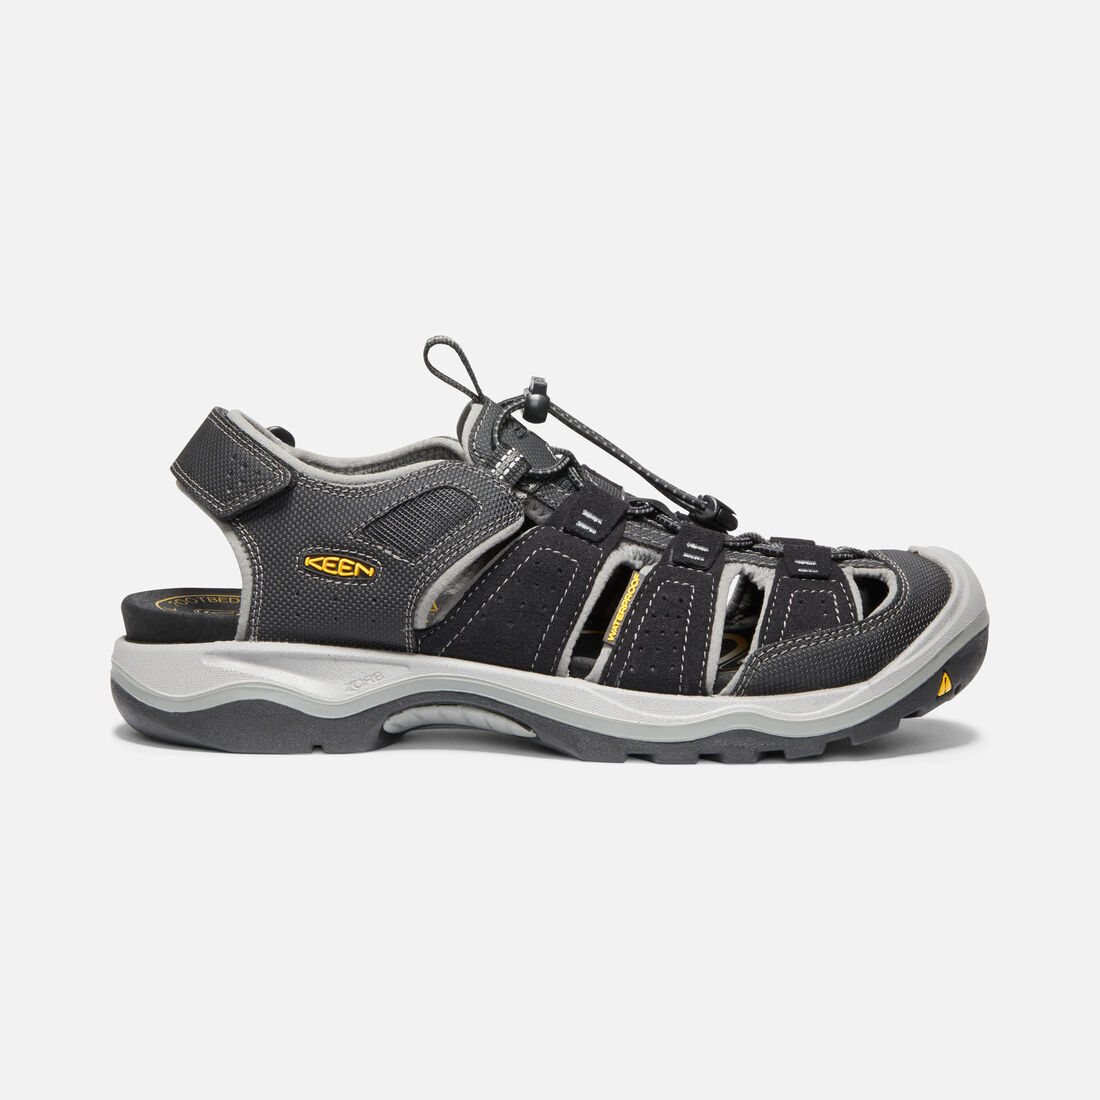 Men's Rialto H2 in Black/Gargoyle - large view.